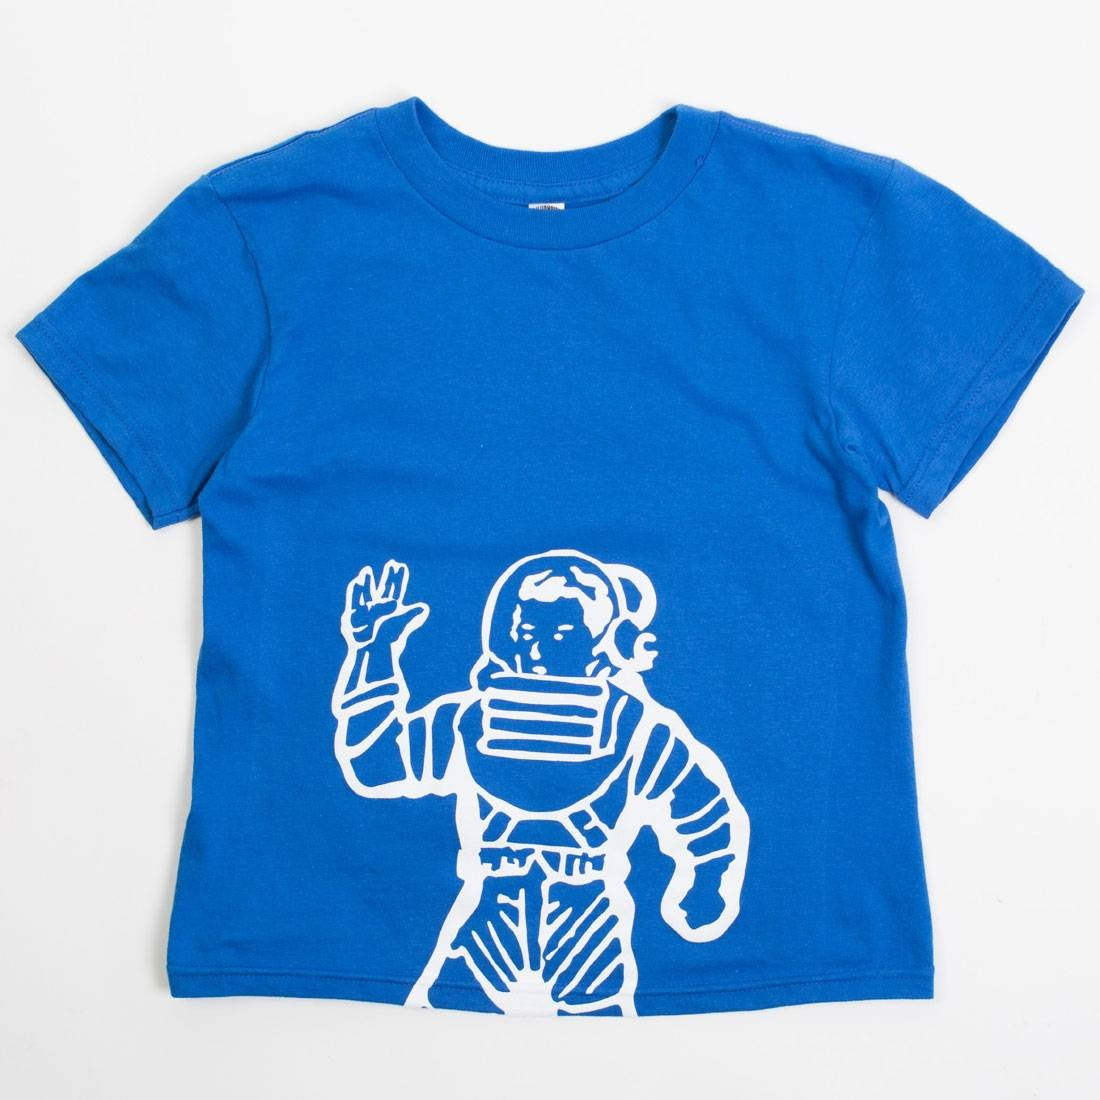 Billionaire Boys Club Youth Astronaut Tee (blue / royal)